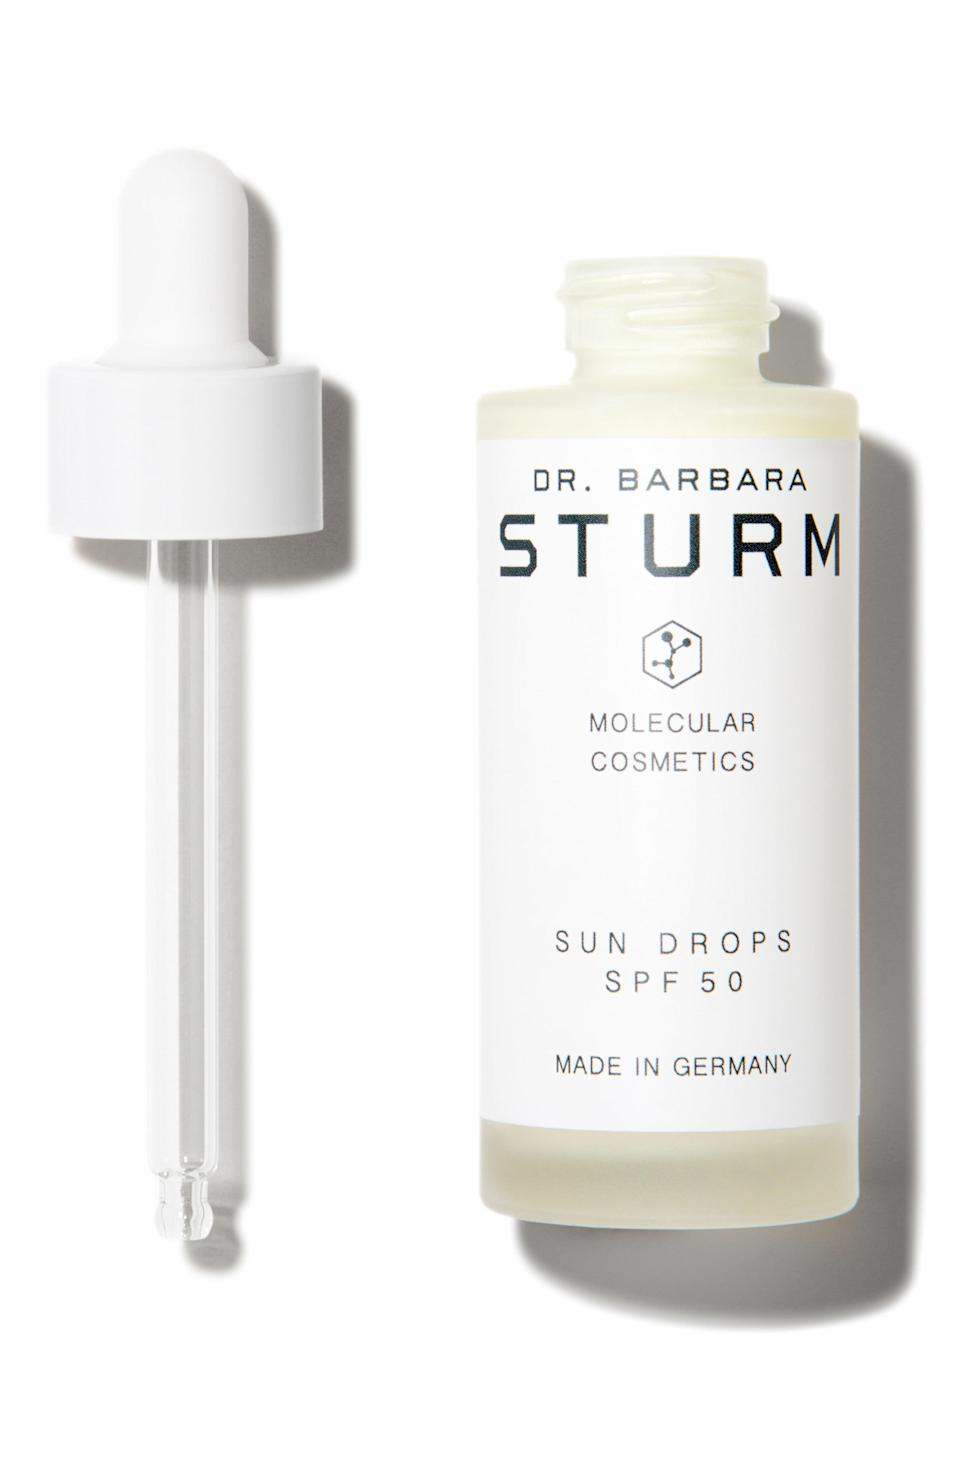 """<p><strong>Dr. Barbara Sturm</strong></p><p>nordstrom.com</p><p><strong>$145.00</strong></p><p><a href=""""https://go.redirectingat.com?id=74968X1596630&url=https%3A%2F%2Fwww.nordstrom.com%2Fs%2Fdr-barbara-sturm-sun-drops-serum-spf-50%2F4699364&sref=https%3A%2F%2Fwww.townandcountrymag.com%2Fstyle%2Fbeauty-products%2Fg27889502%2Fbest-face-sunscreen%2F"""" rel=""""nofollow noopener"""" target=""""_blank"""" data-ylk=""""slk:Shop Now"""" class=""""link rapid-noclick-resp"""">Shop Now</a></p><p>This feather light serum can be mixed in with moisturizer or with foundation to create a protective shield without loading up on product.</p>"""